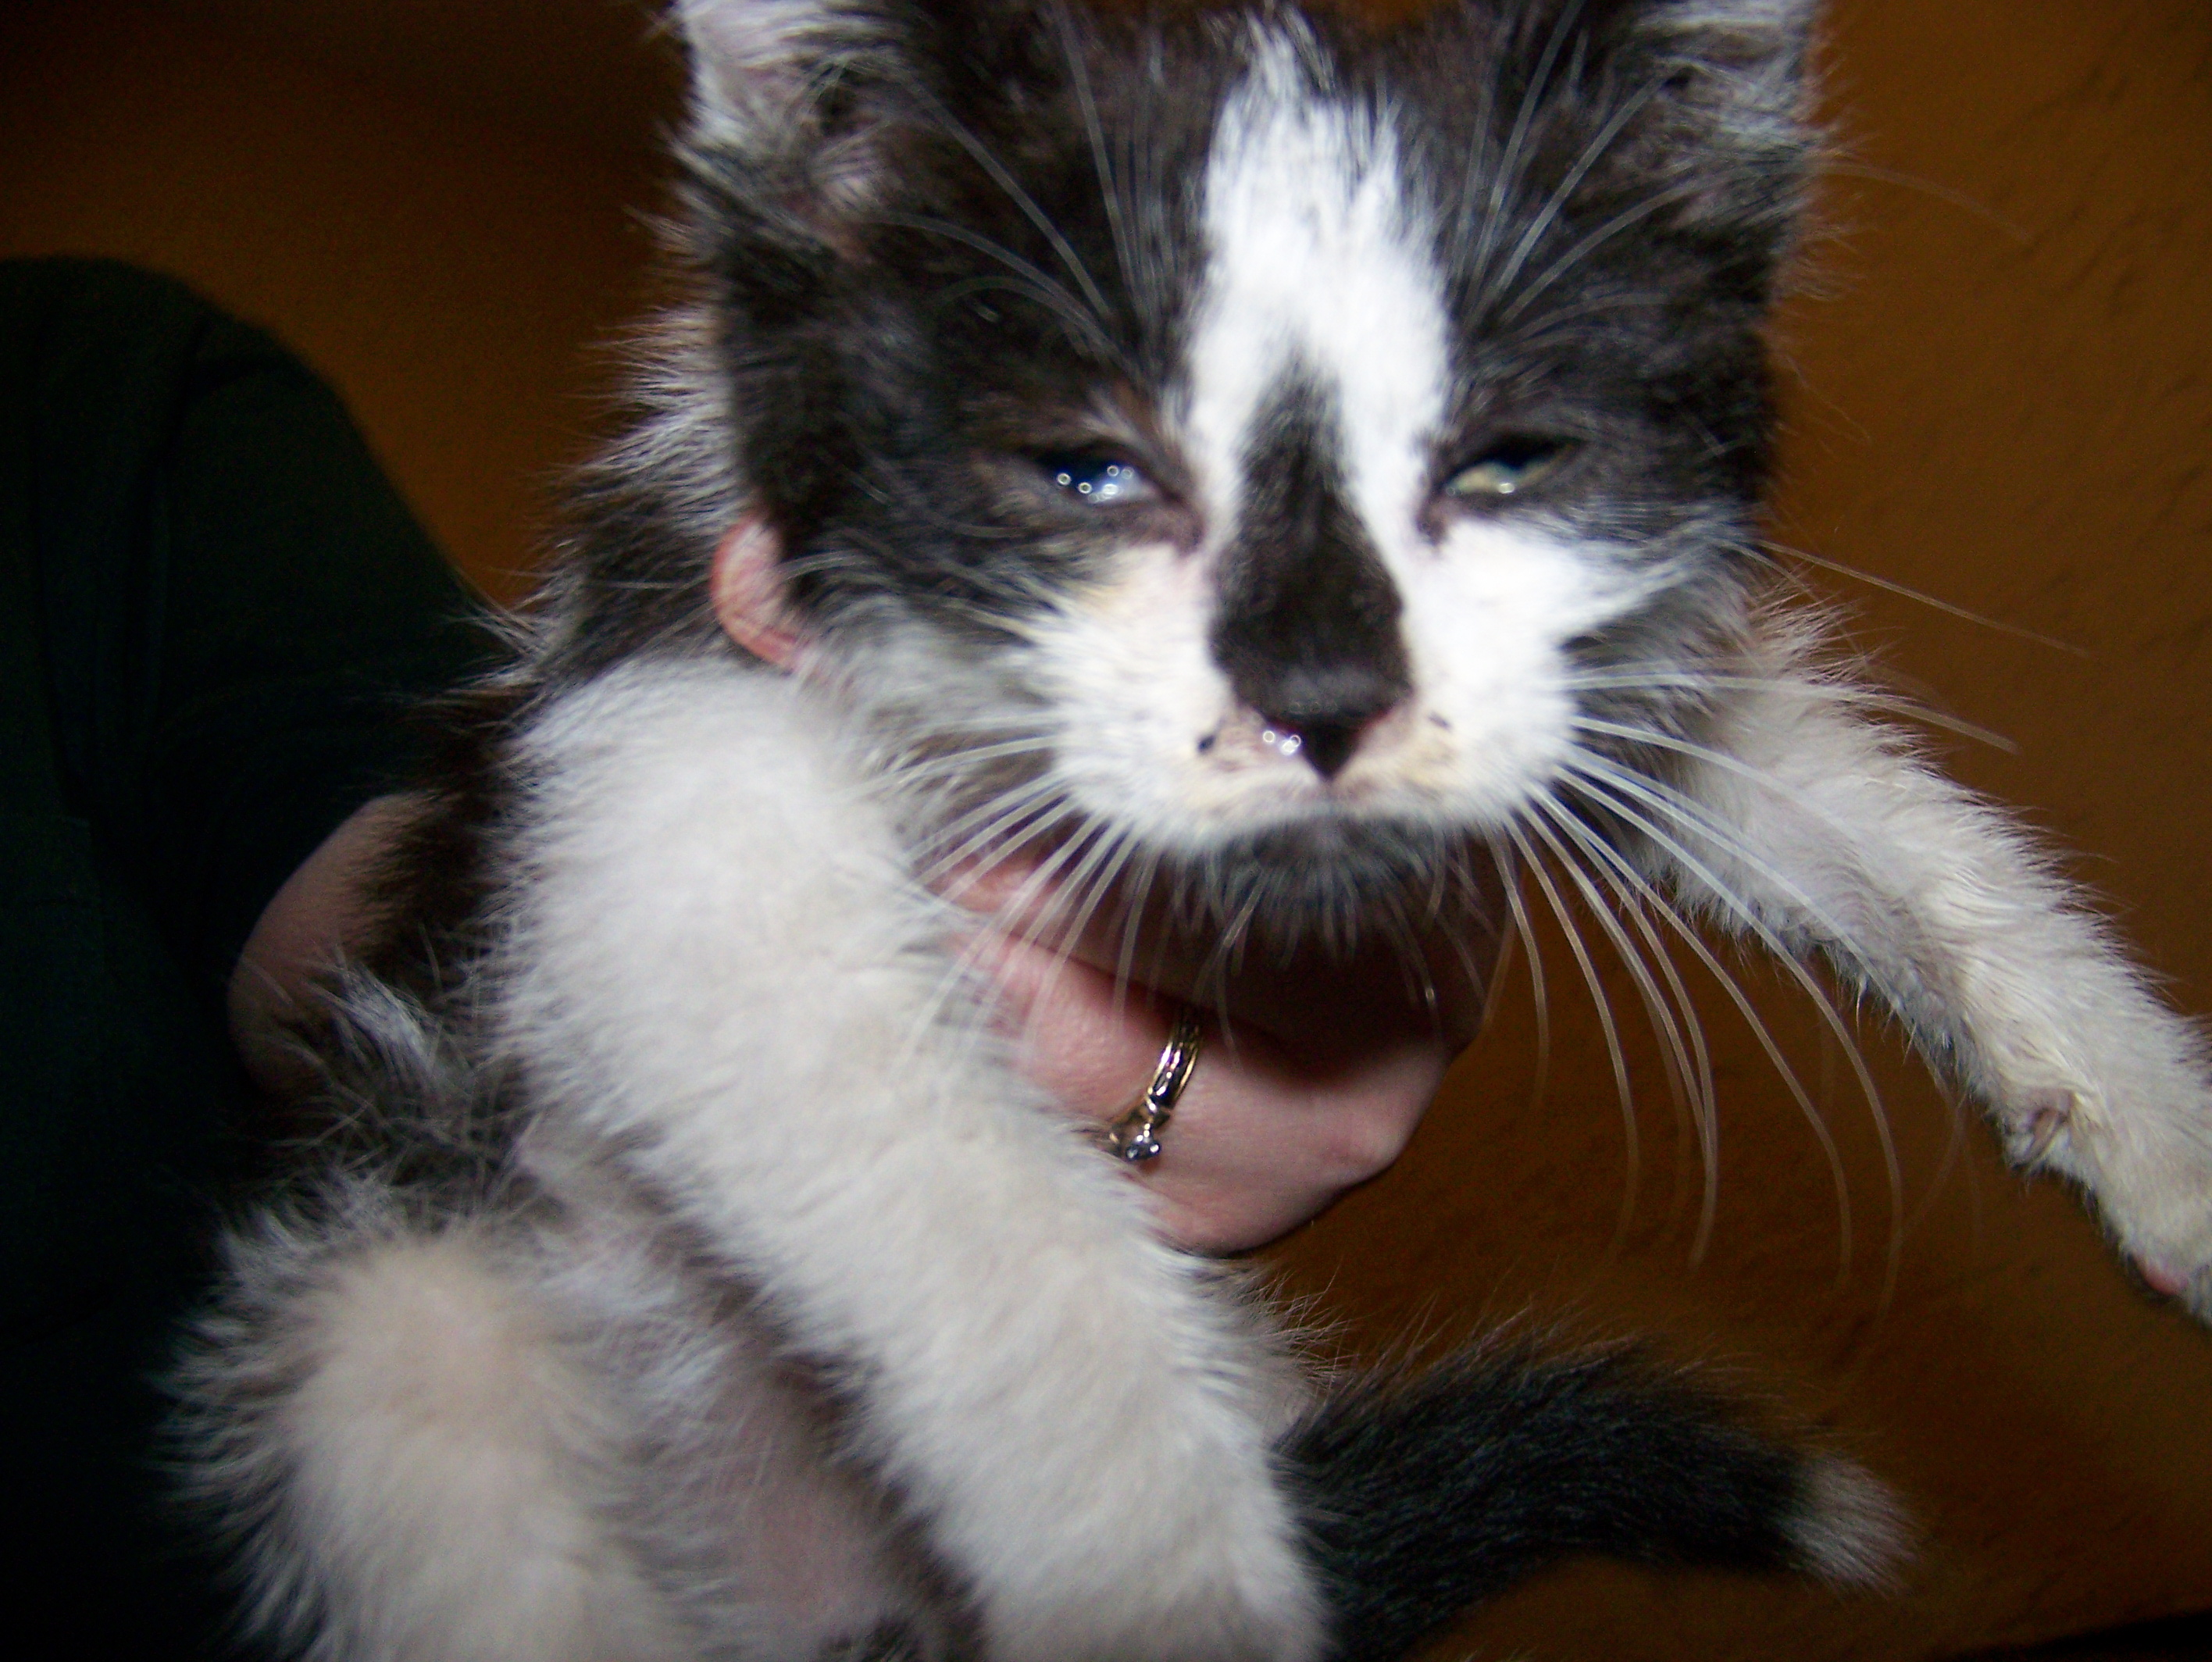 His name will probably be Boom, complementing the other cats, Thud and Splat.